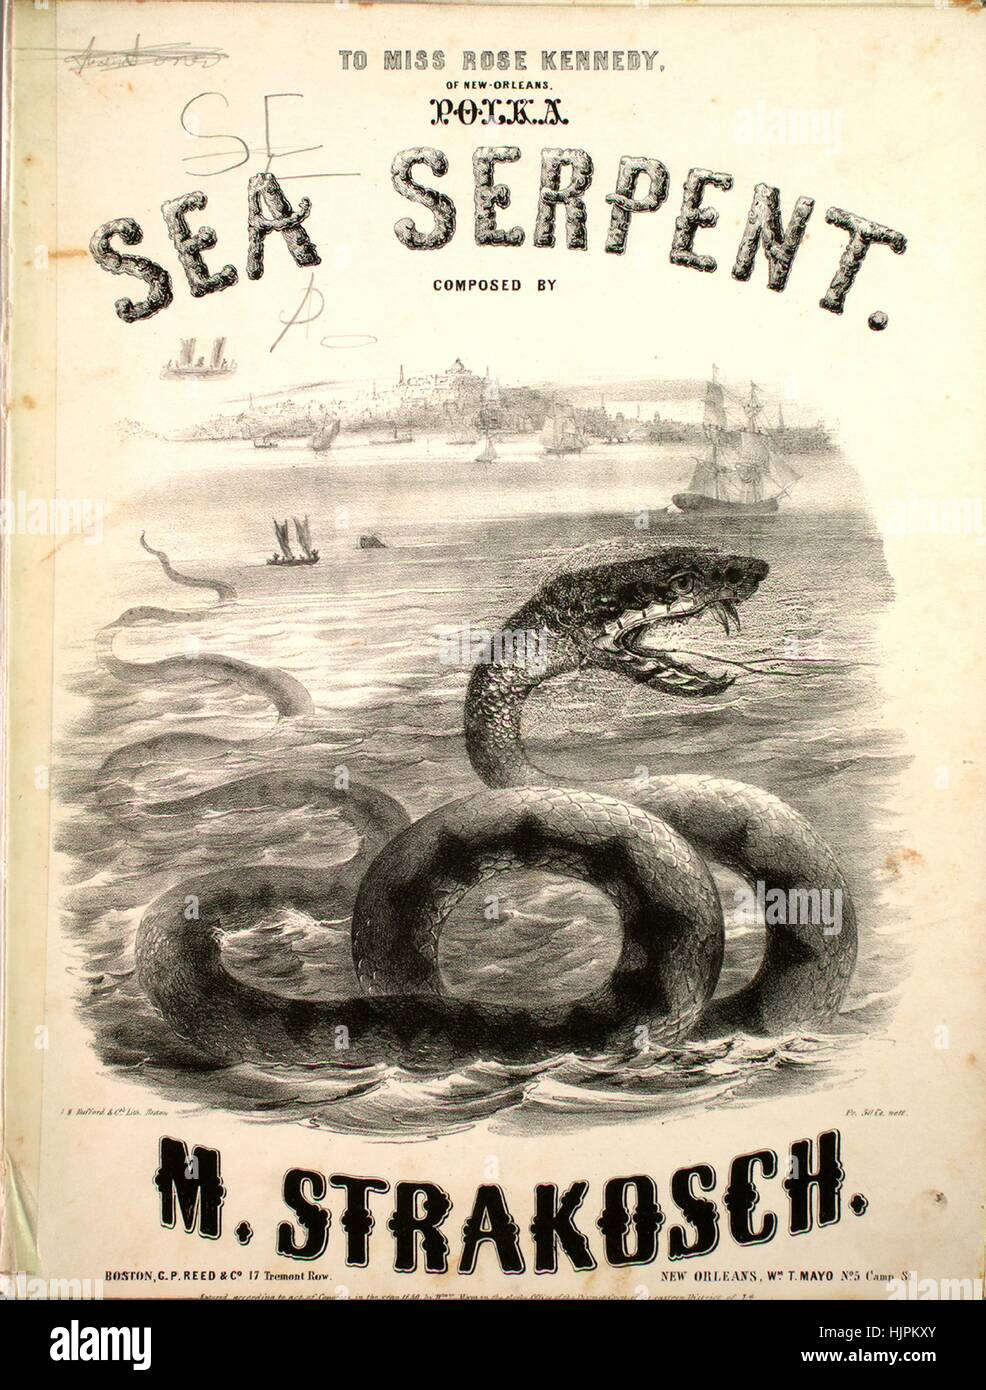 Sheet music cover image of the song 'Sea Serpent [damaged copy